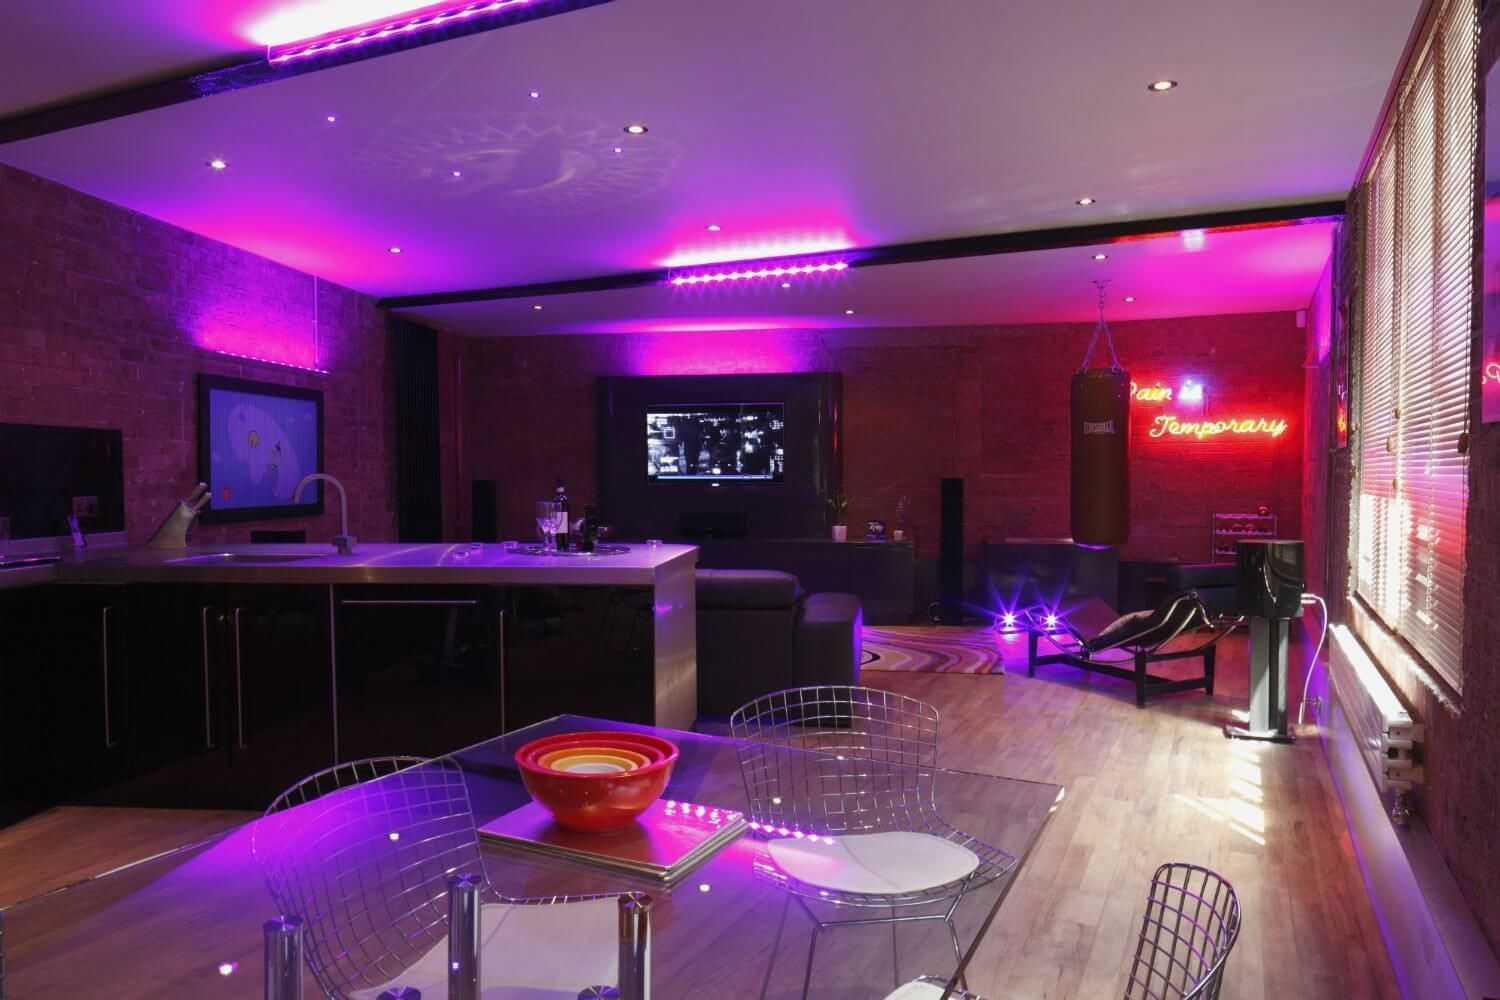 Open Plan Retro Living Room With Neon Lights Interiors Straight Out Of The Most Popular B Mood Lighting Bedroom Mood Lighting Living Room Neon Lights Bedroom #neon #light #living #room